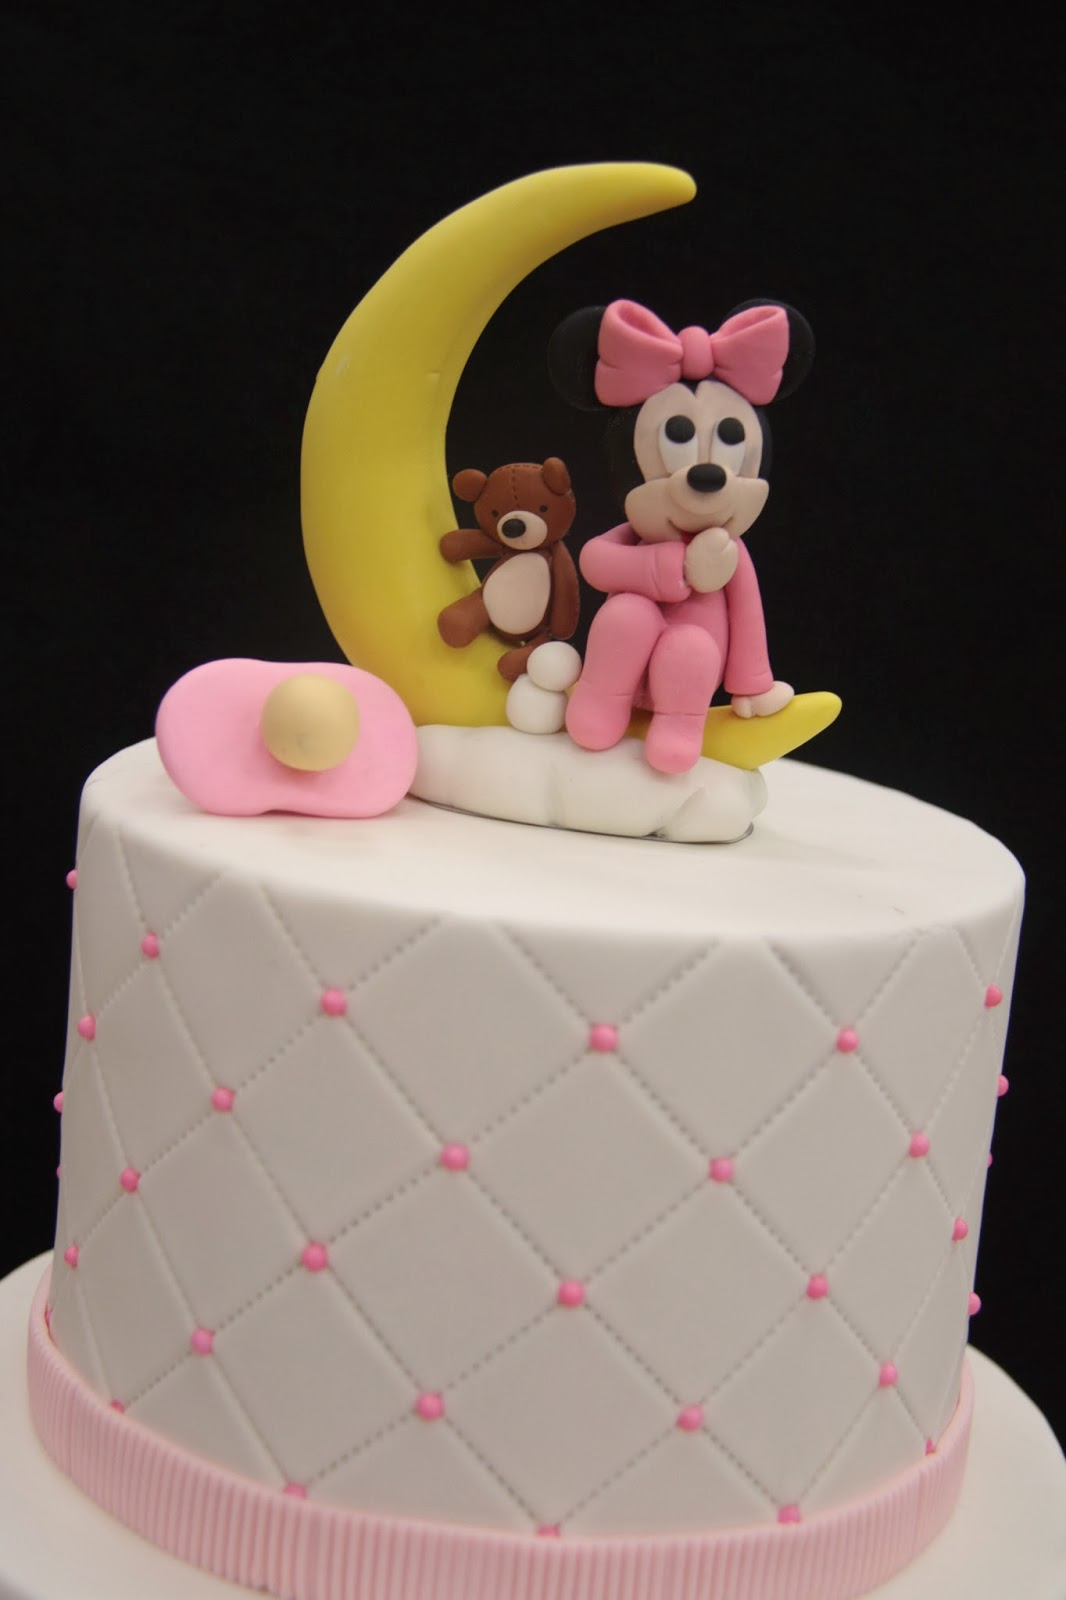 Penang Wedding Cakes By Leesin Baby Minnie Baby Cake